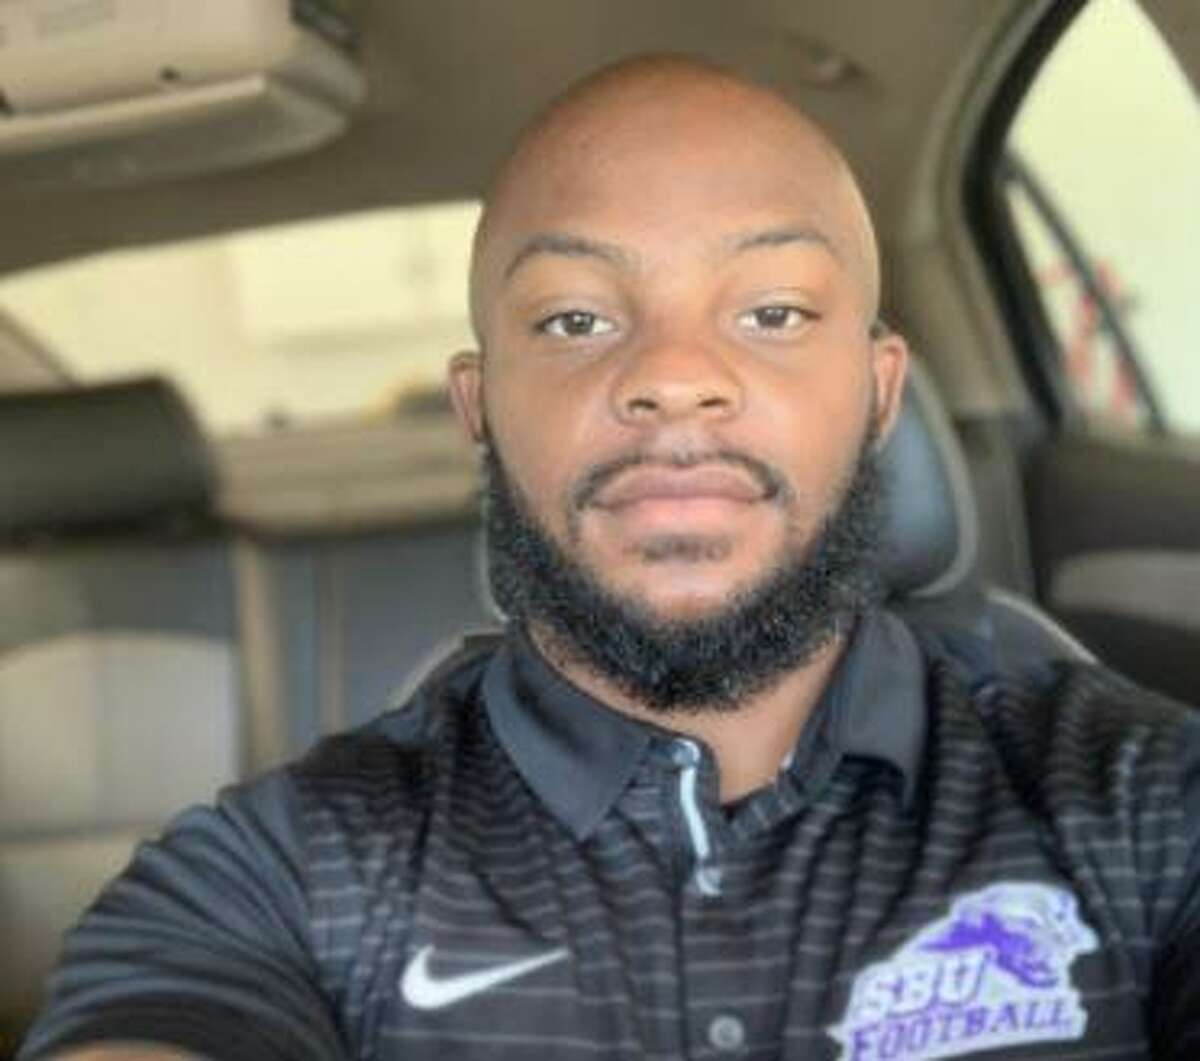 Travis High School coach Derwyn Lauderdale was fatally shot Oct. 11, 2020 at a Rosenberg sports complex. Lauderdale was involved in an ongoing dispute with the father of his stepchildren, a Houston man who has been charged in the death and who last year had threatened to kill him, according to officials and court documents.